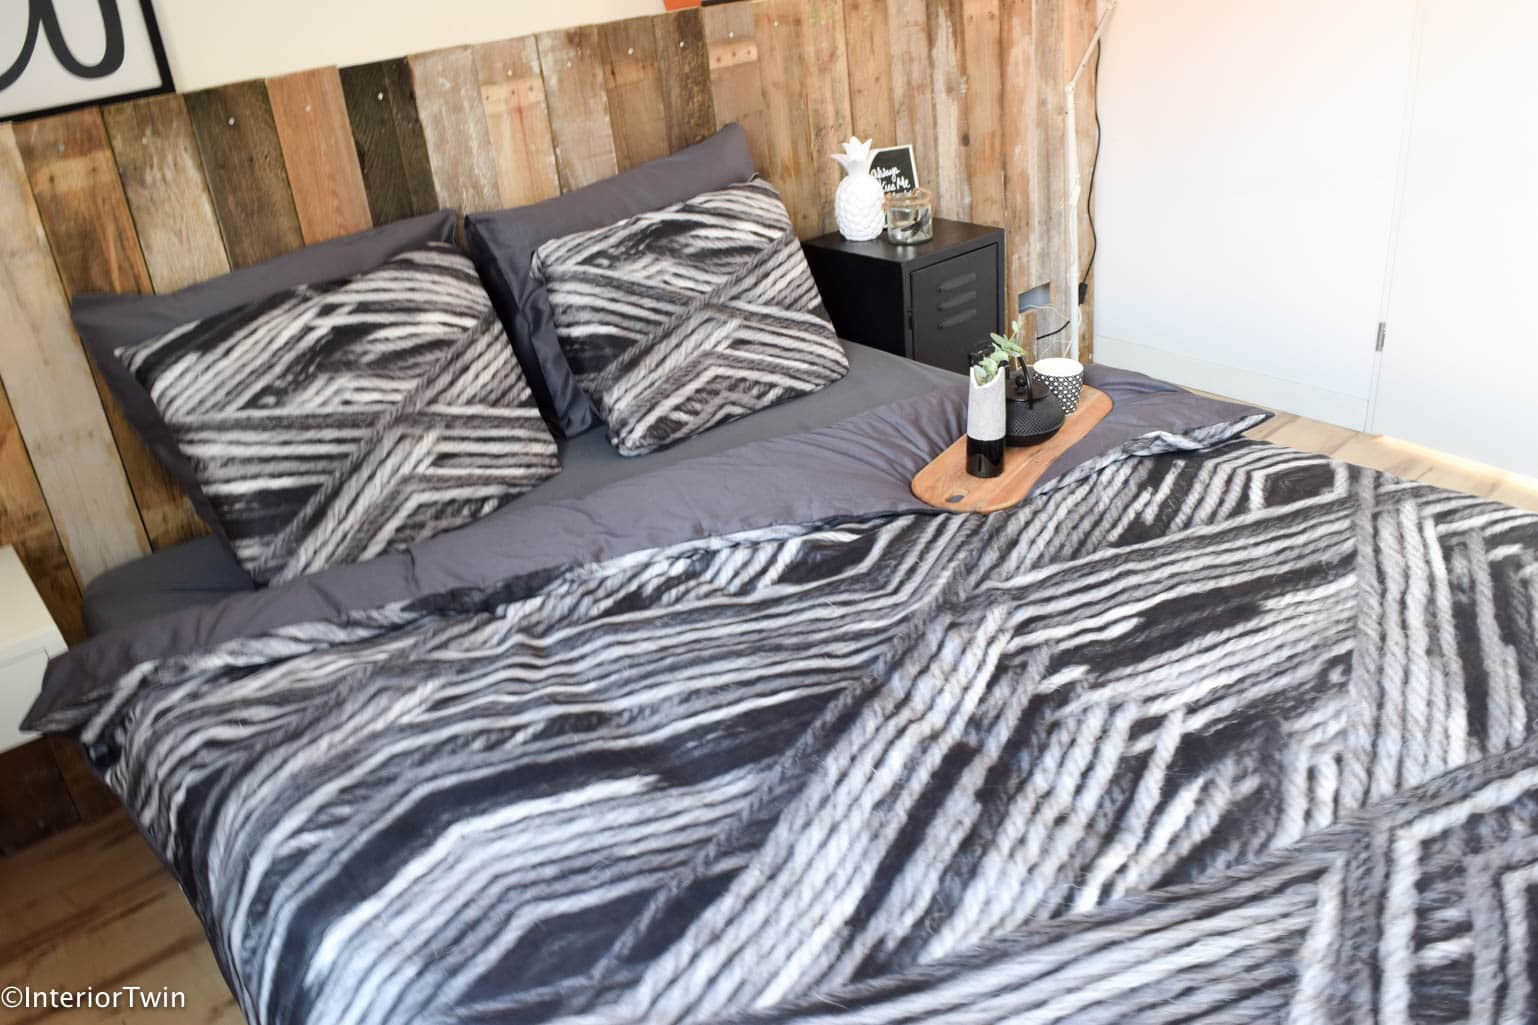 beddengoed Nightlifeliving - www.interiortwin.com